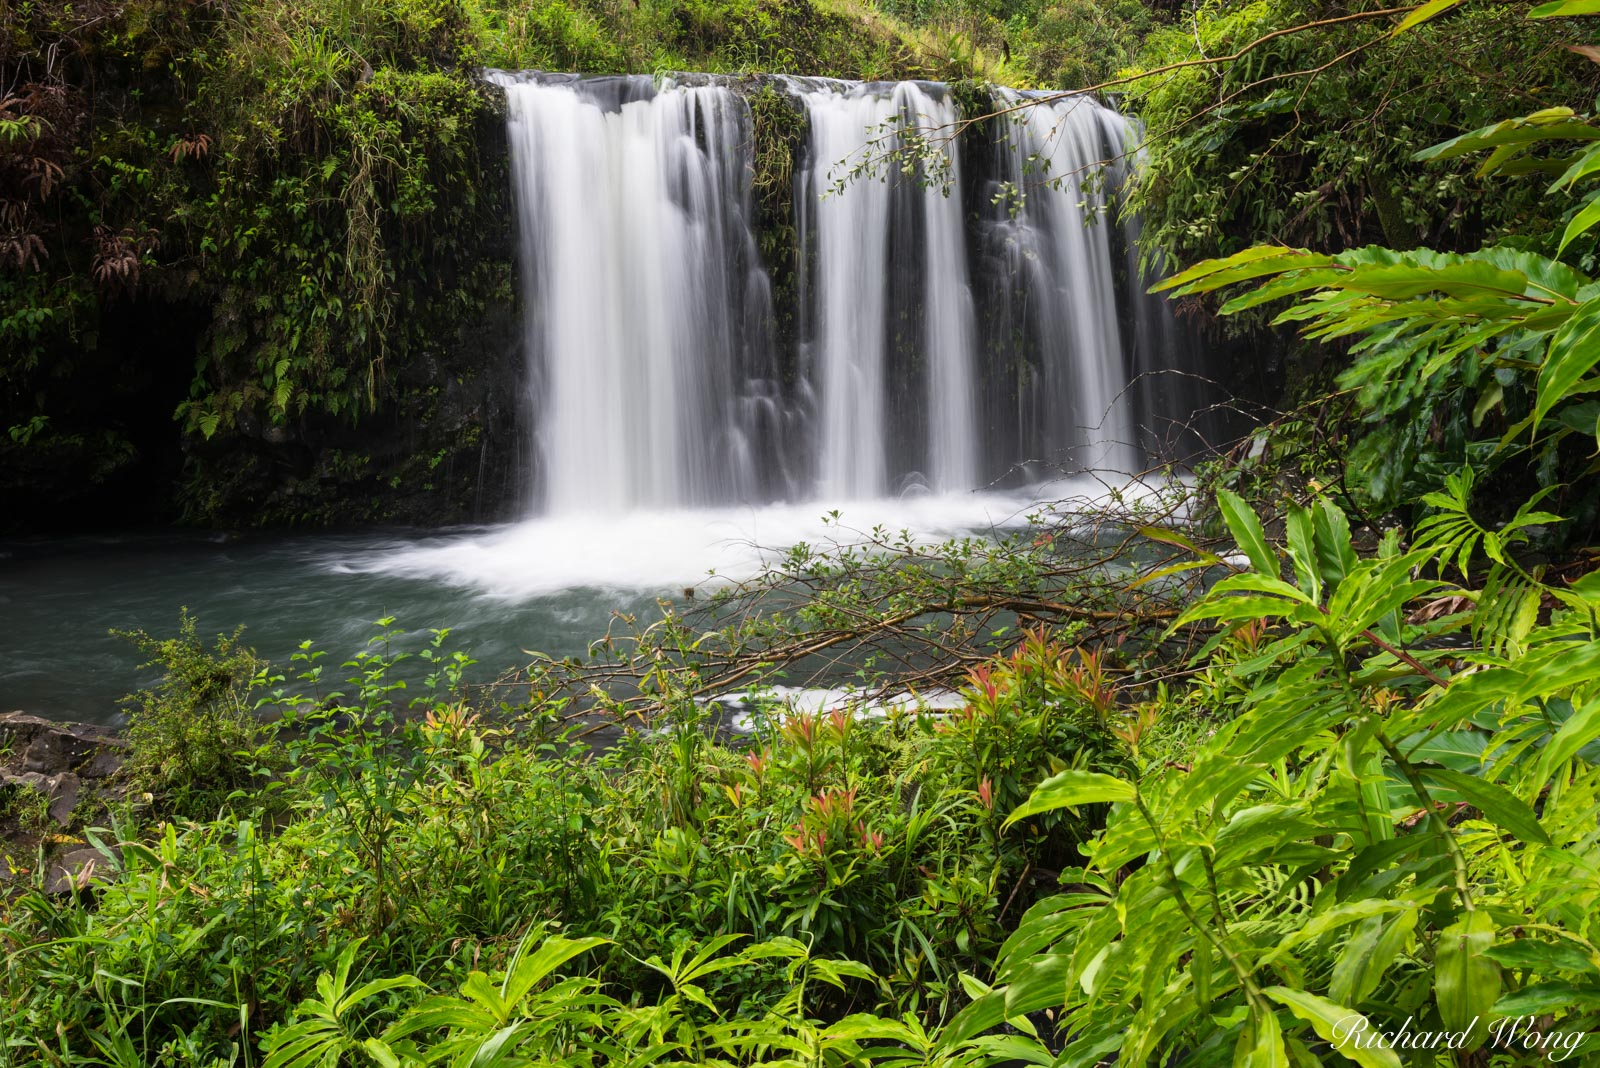 Pua'a Ka'a State Wayside Park Waterfall, Maui, Hawaii, photo, photo